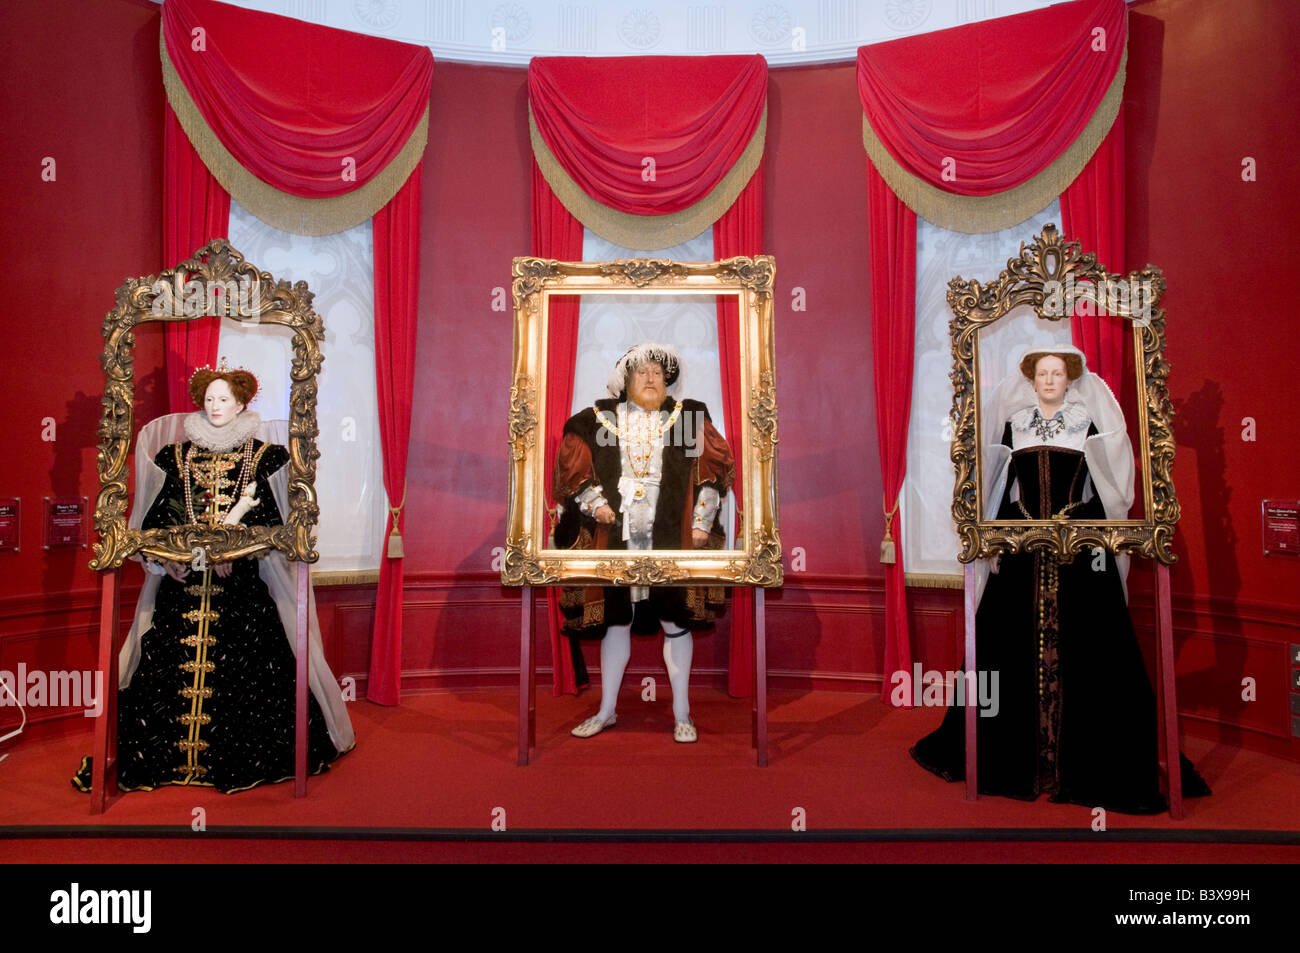 Waxwork models of Queen Elizabeth I Henry VIII and Queen Mary I at Madame Tussauds London, UK - Stock Image